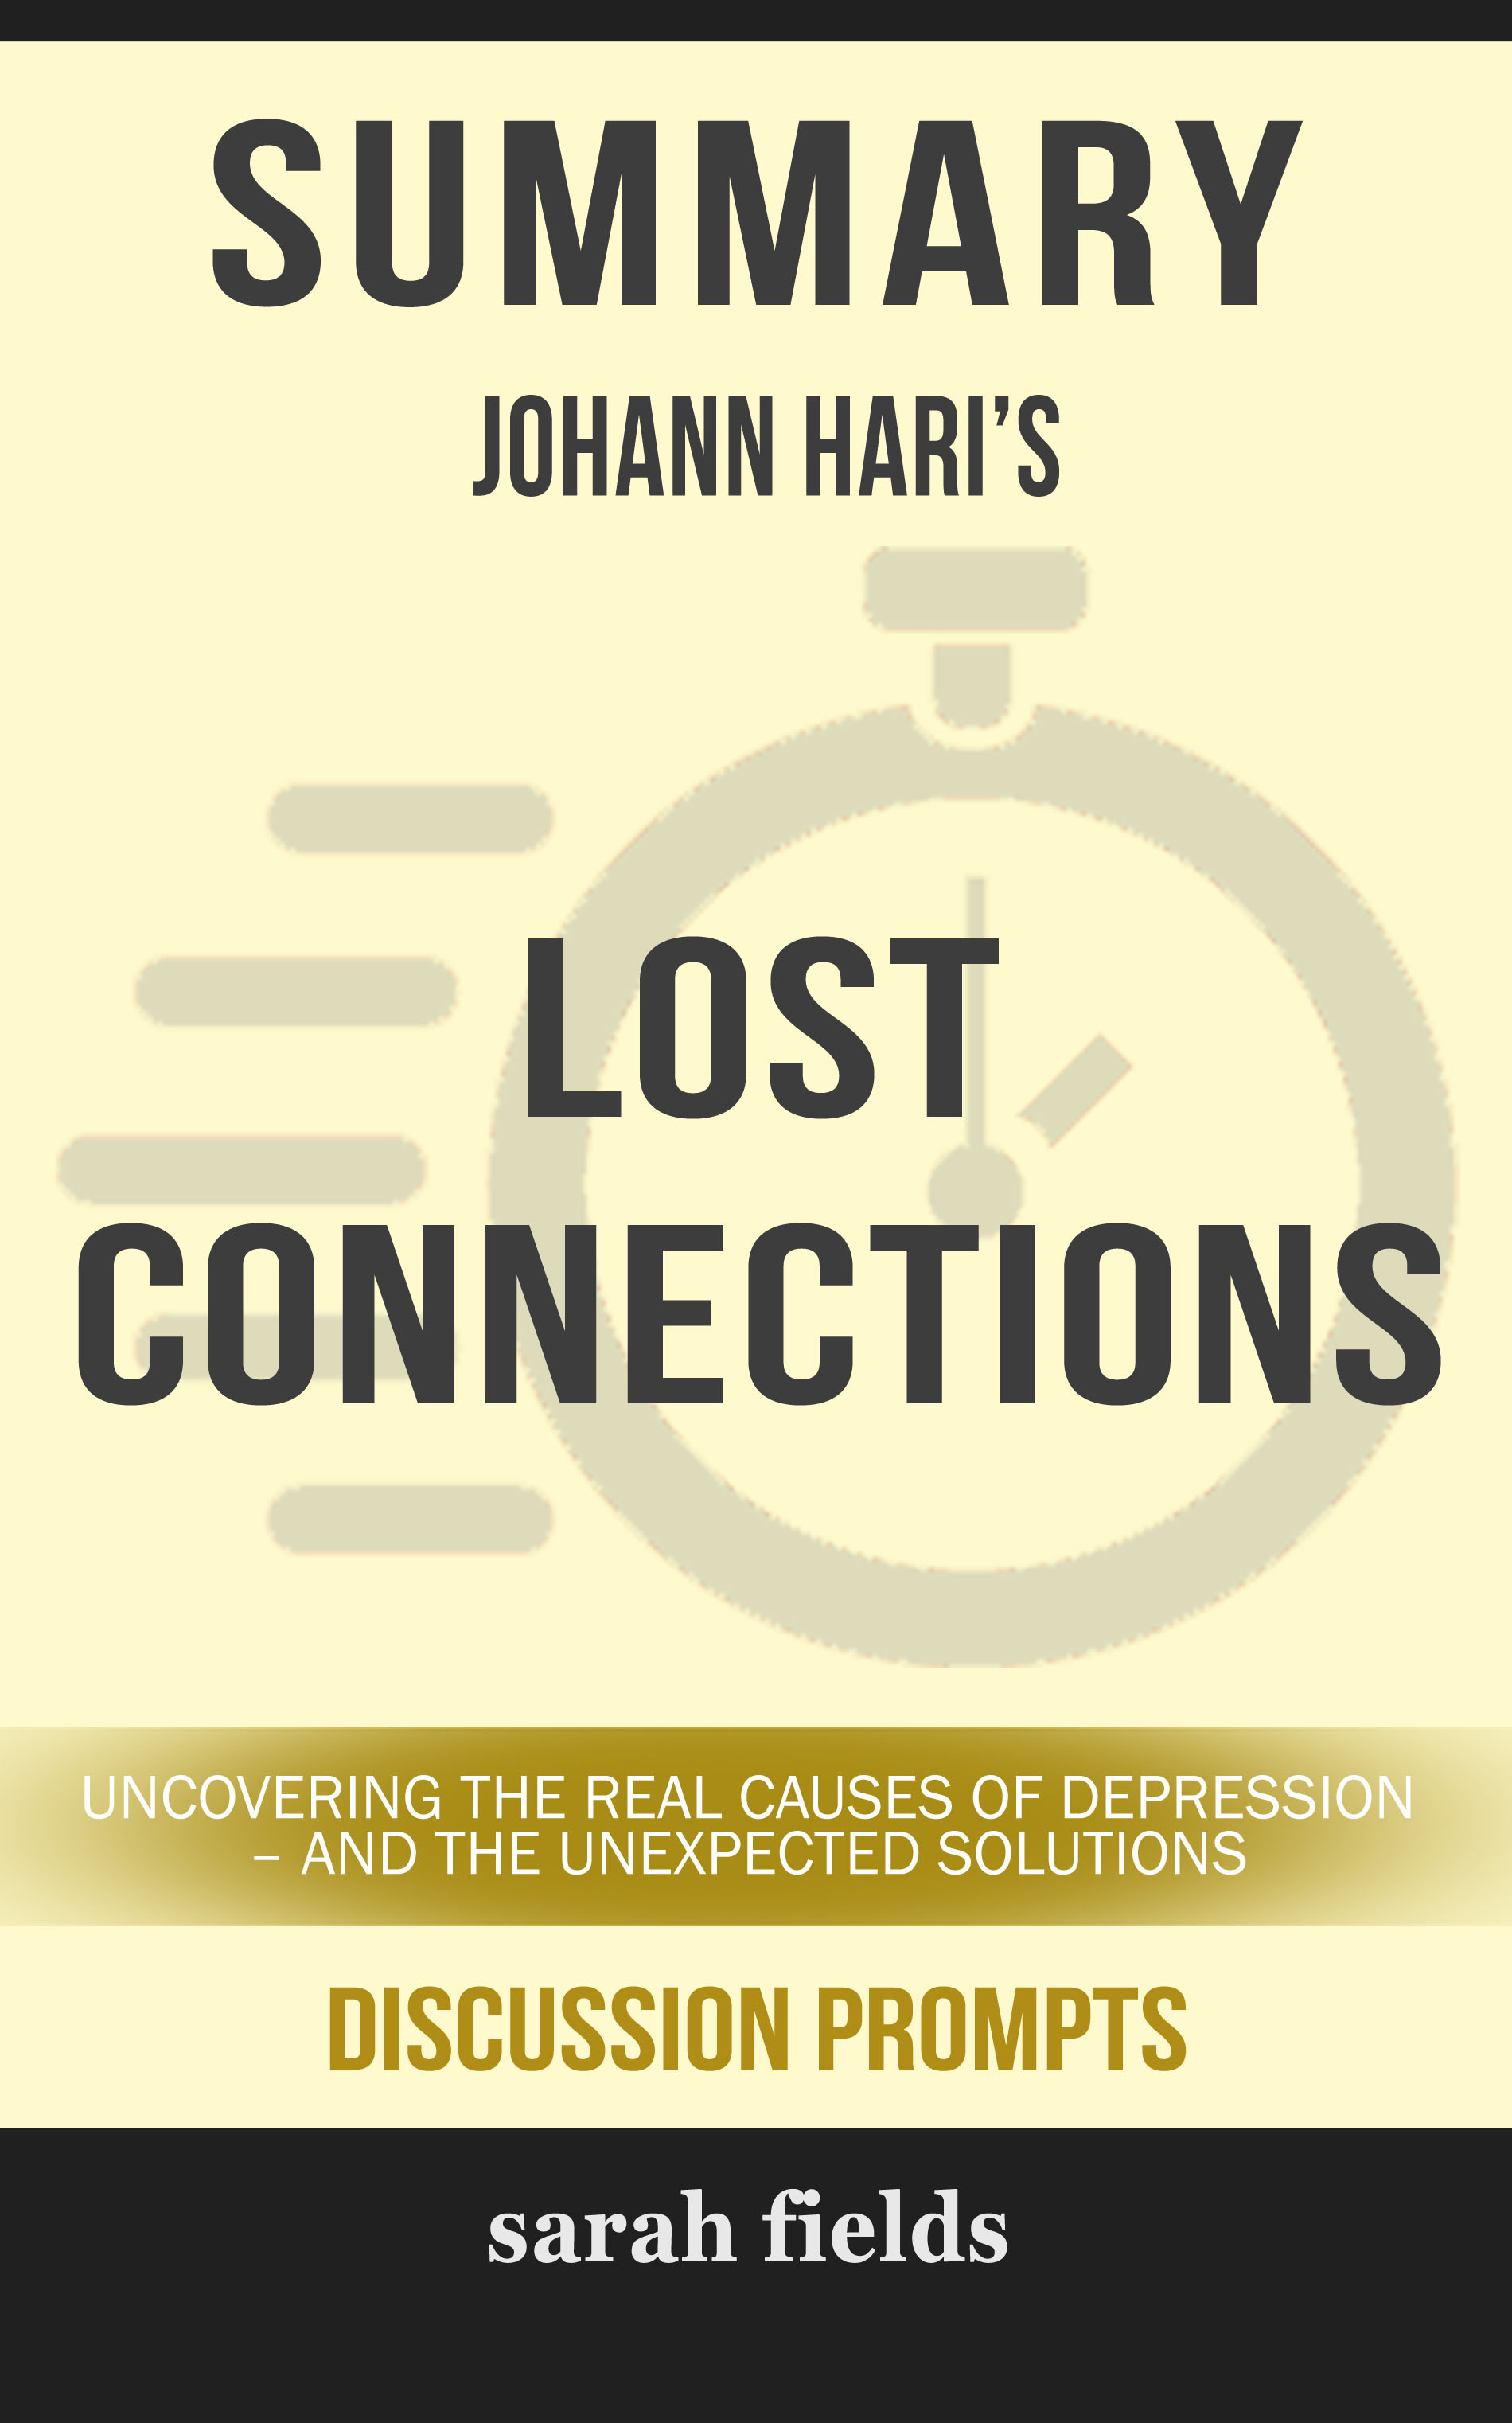 Summary of Lost Connections: Uncovering the Real Causes of Depression – and  the Unexpected Solutions by Johann Hari (Discussion Prompts), an Ebook by